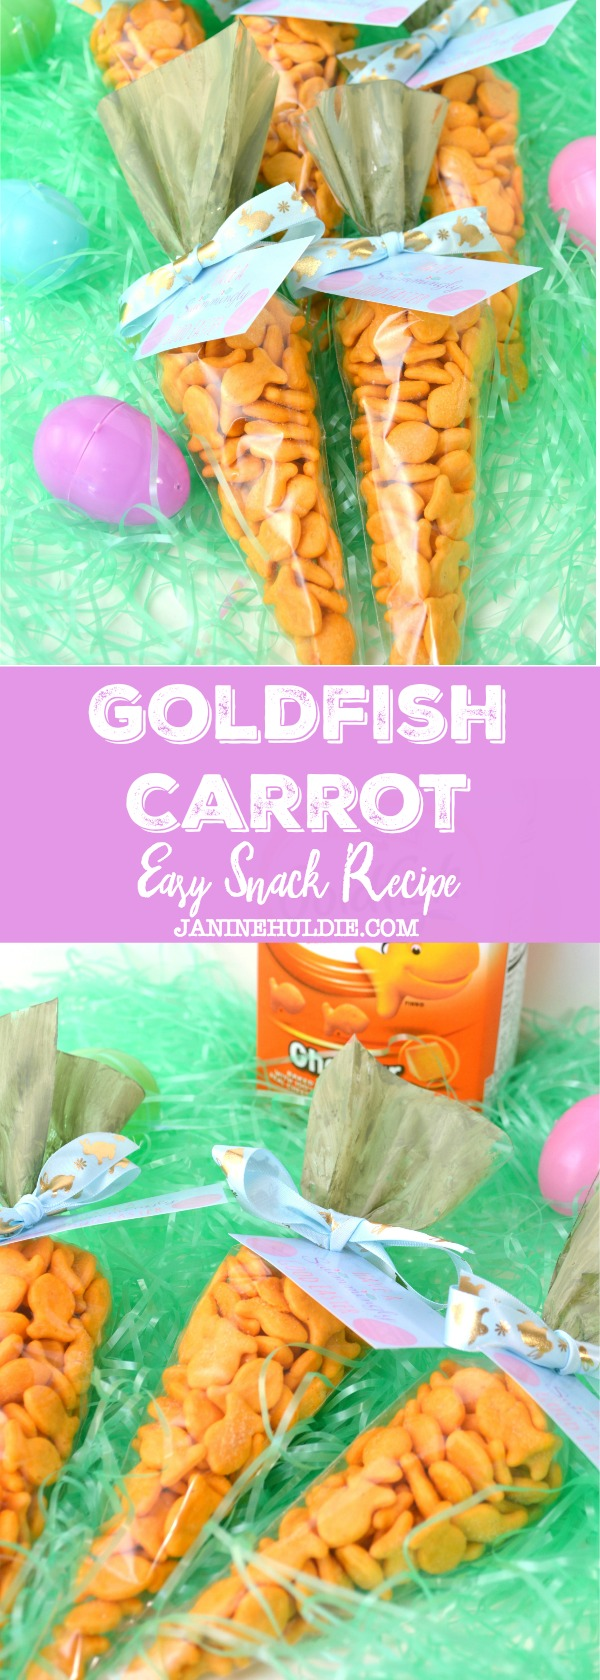 Easy Goldfish Carrot Snack Recipe